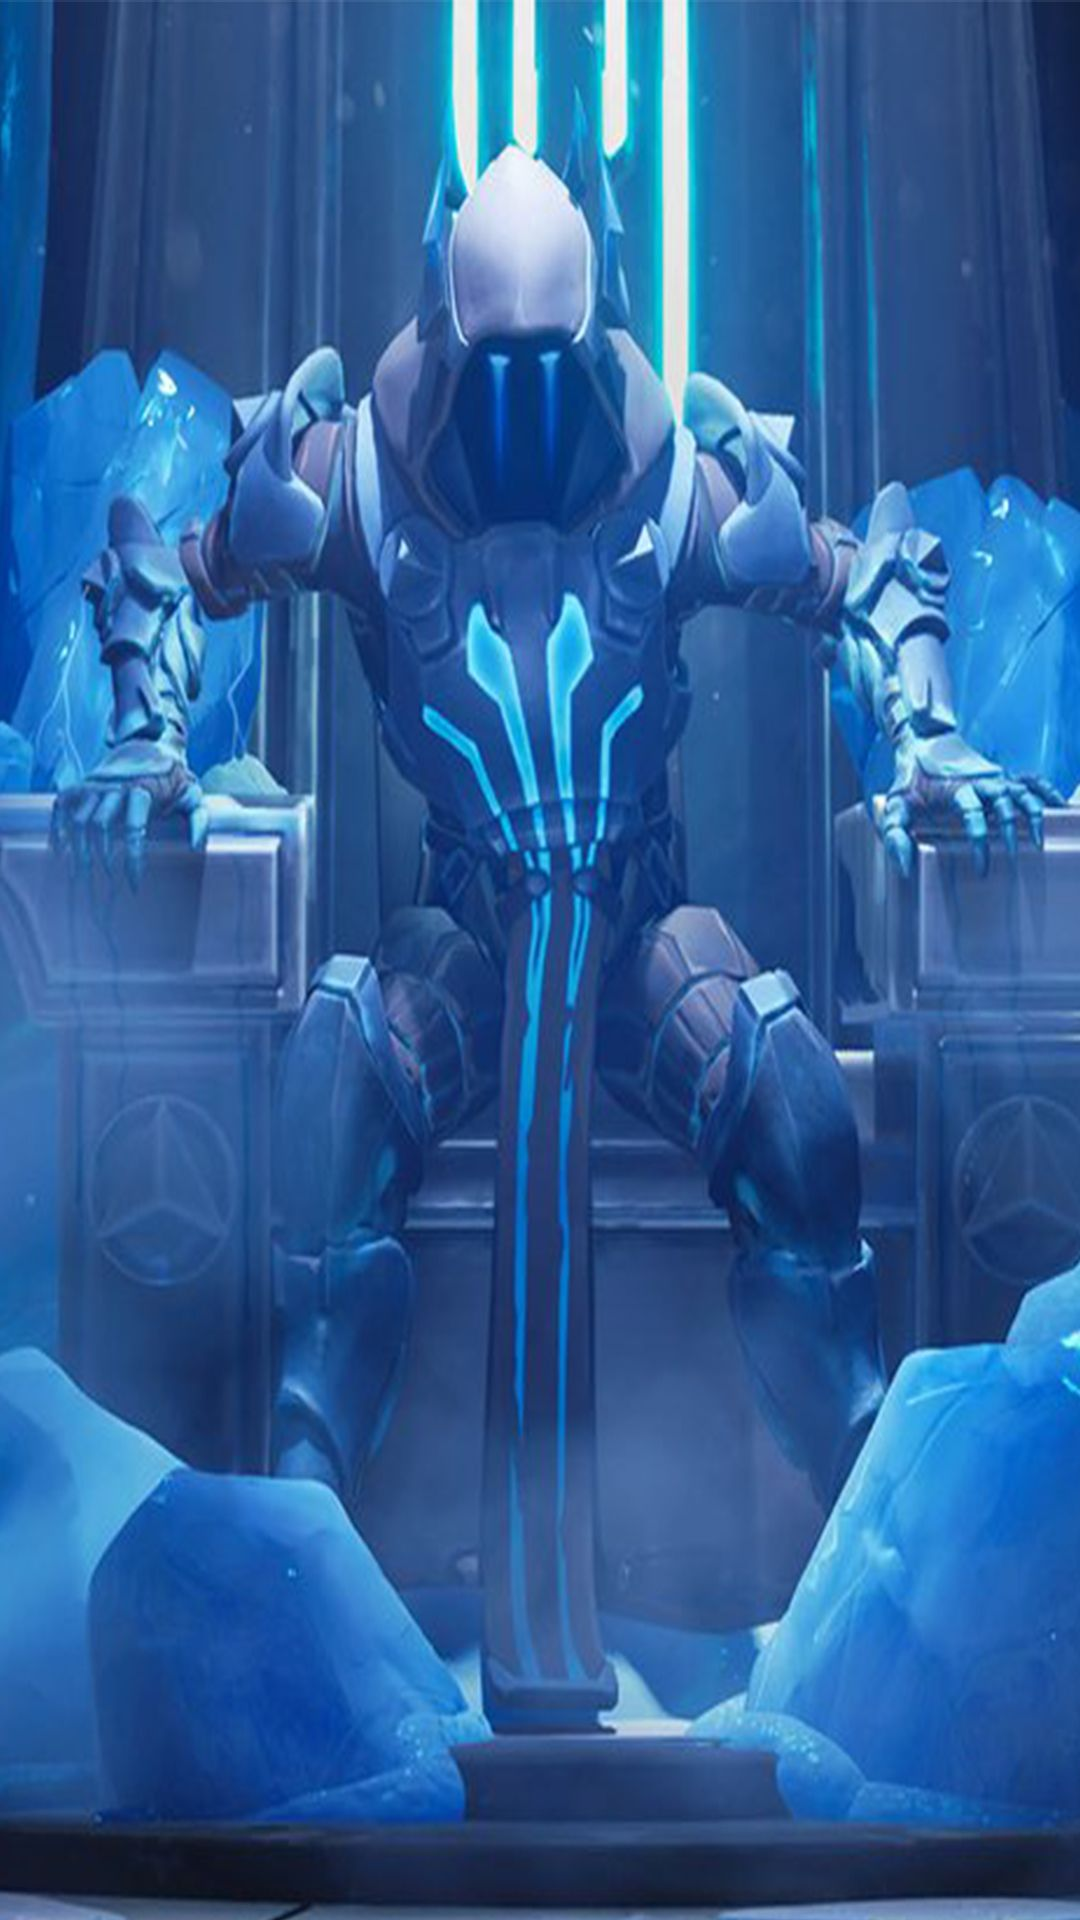 Fortnite Ice King Best Gaming Wallpapers Gaming Wallpapers